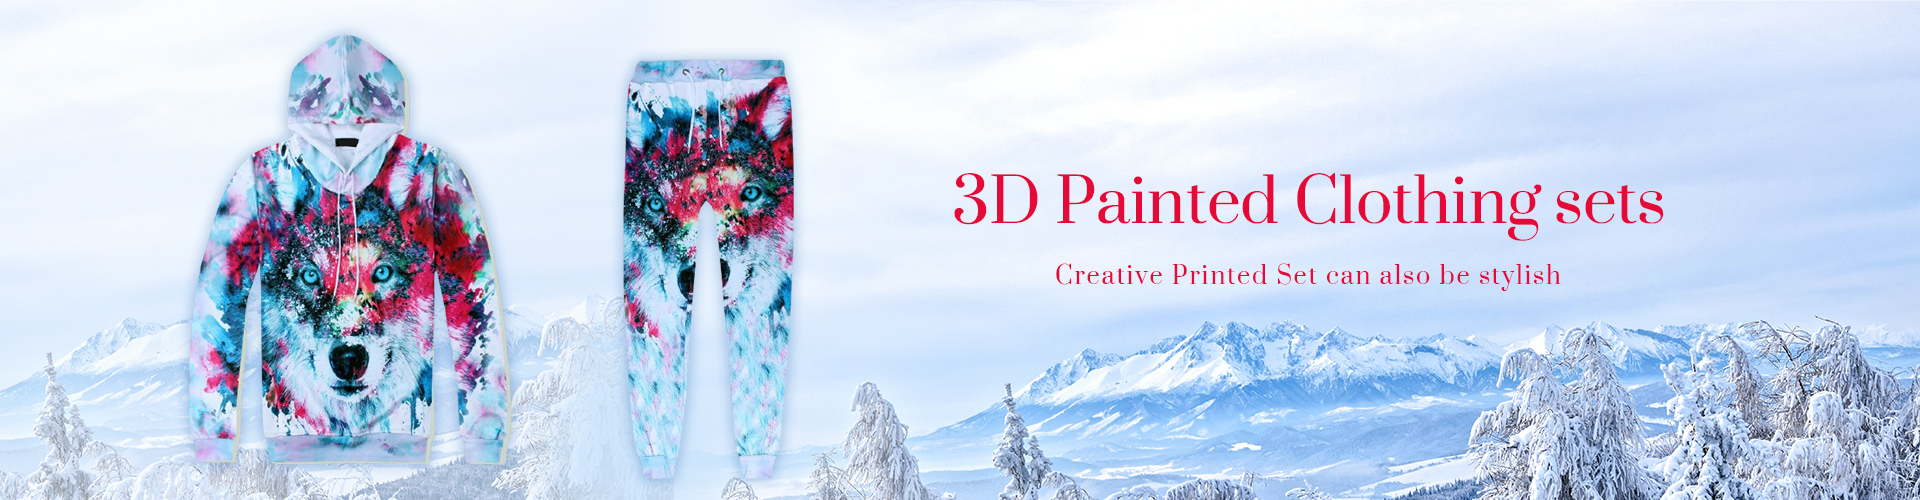 3D Painted Clothing sets